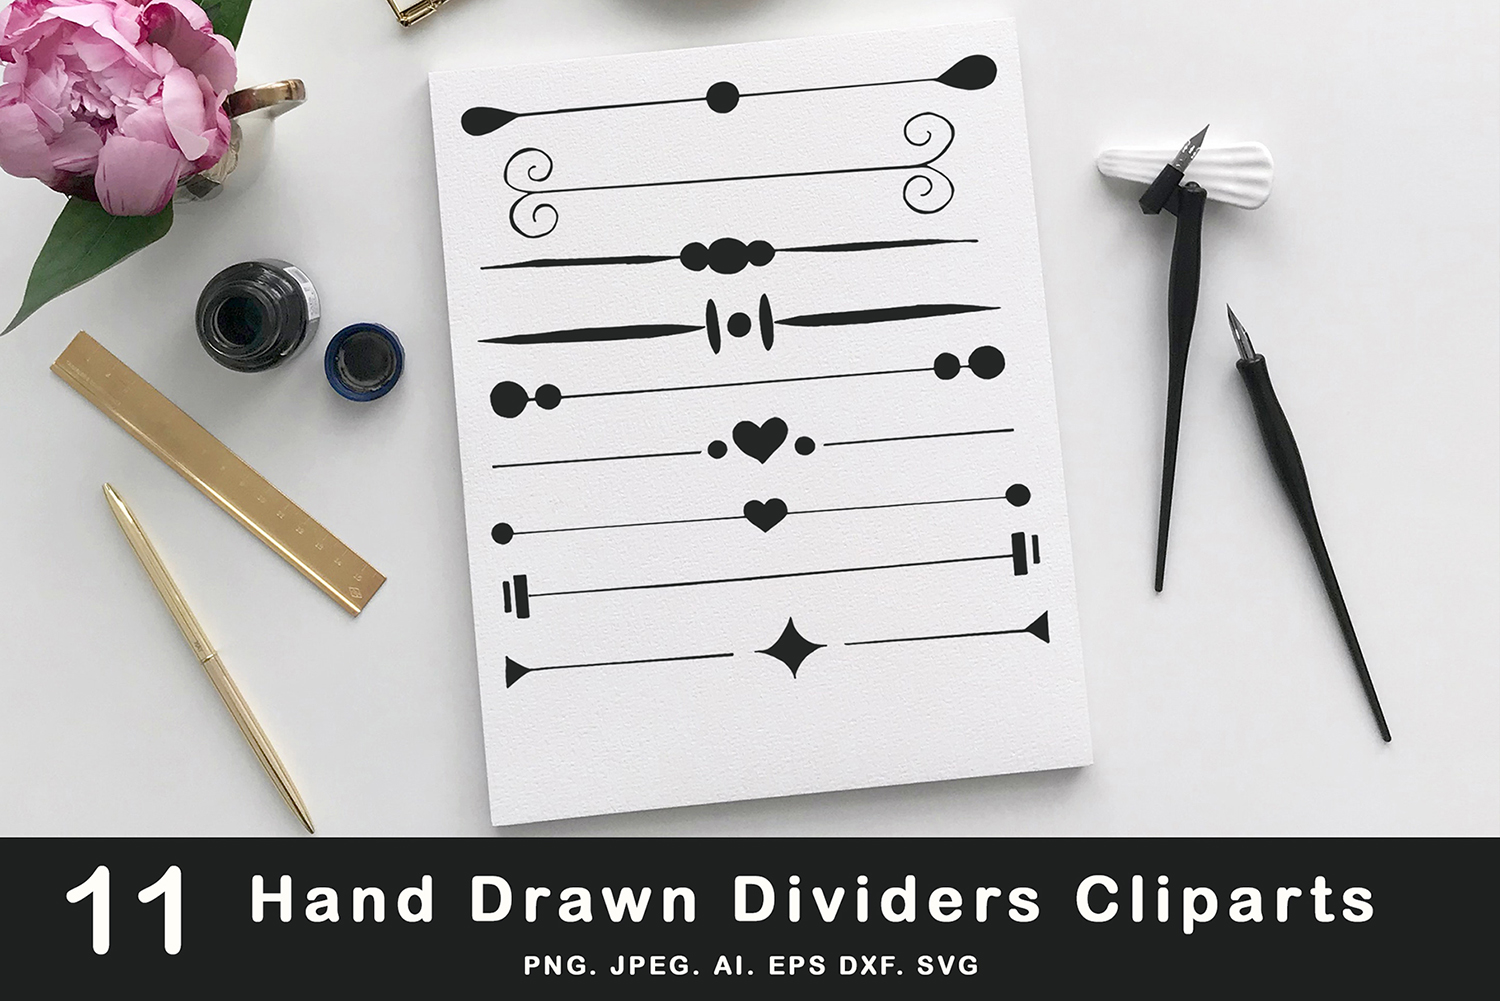 Download Free 10 Hand Drawn Dividers Cliparts Graphic By Creative Tacos for Cricut Explore, Silhouette and other cutting machines.